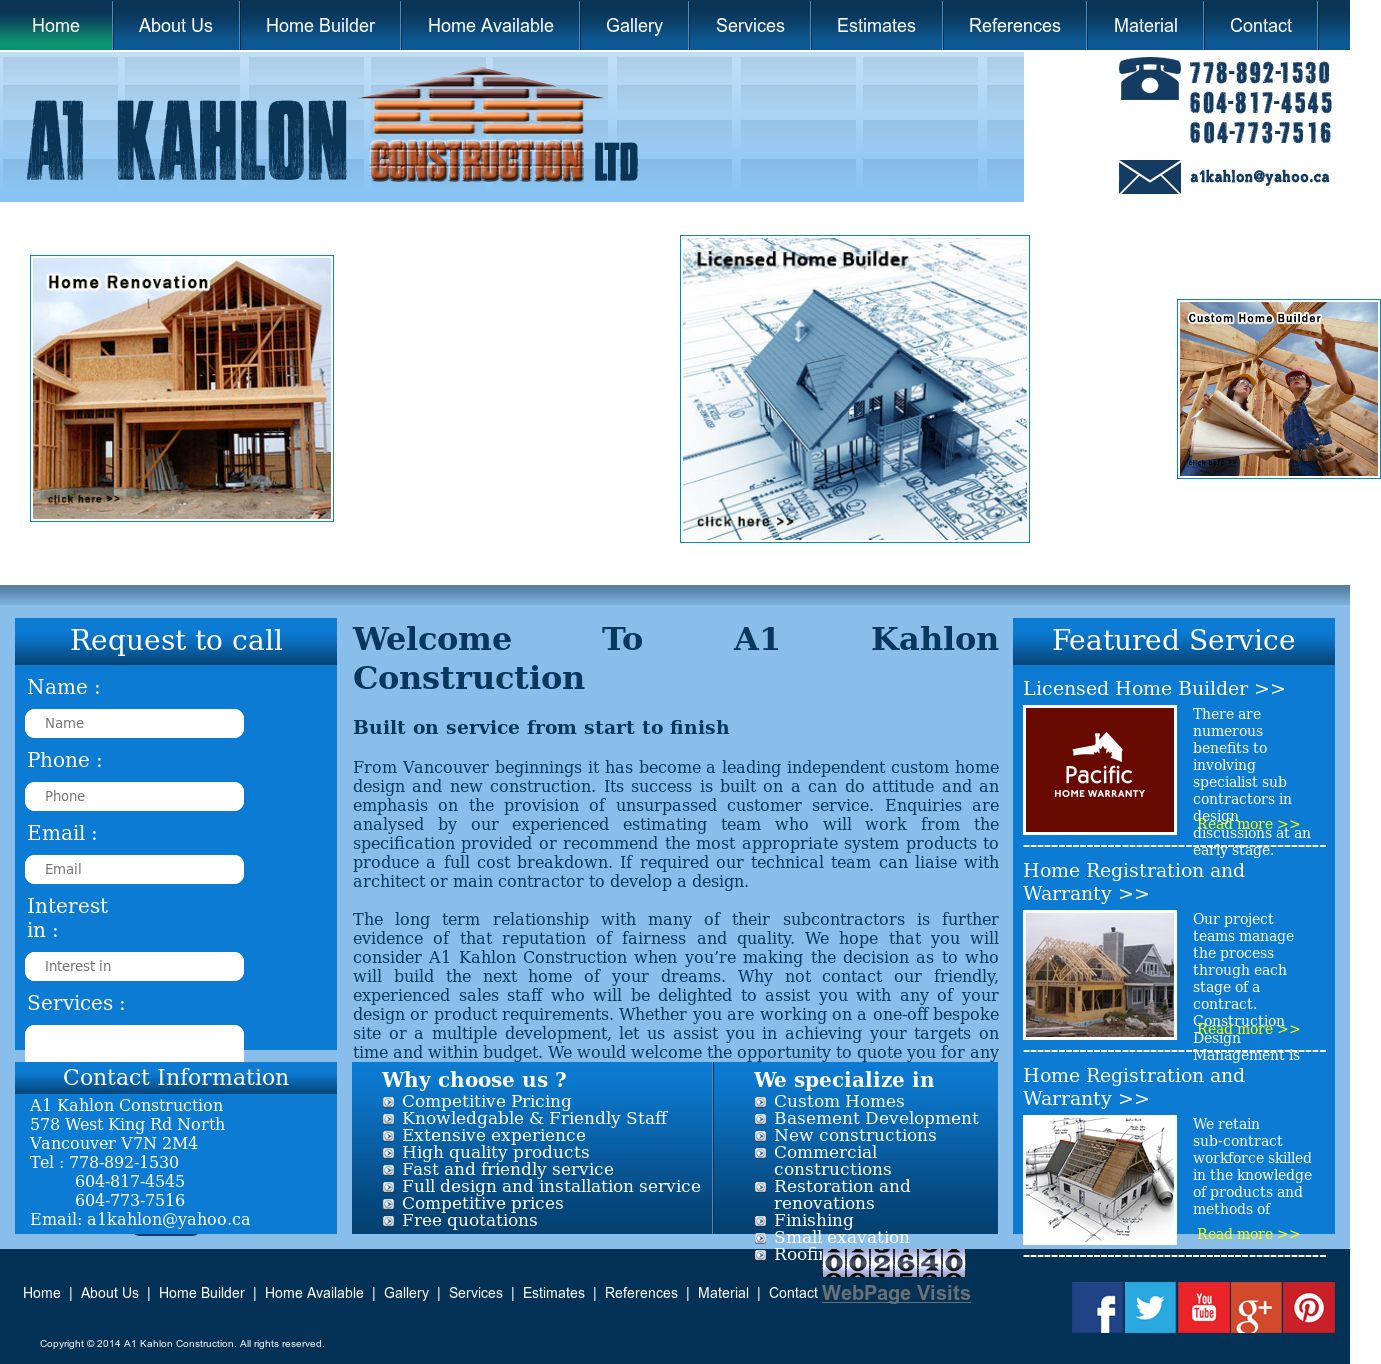 A1 Kahlon Construction Competitors, Revenue and Employees - Owler